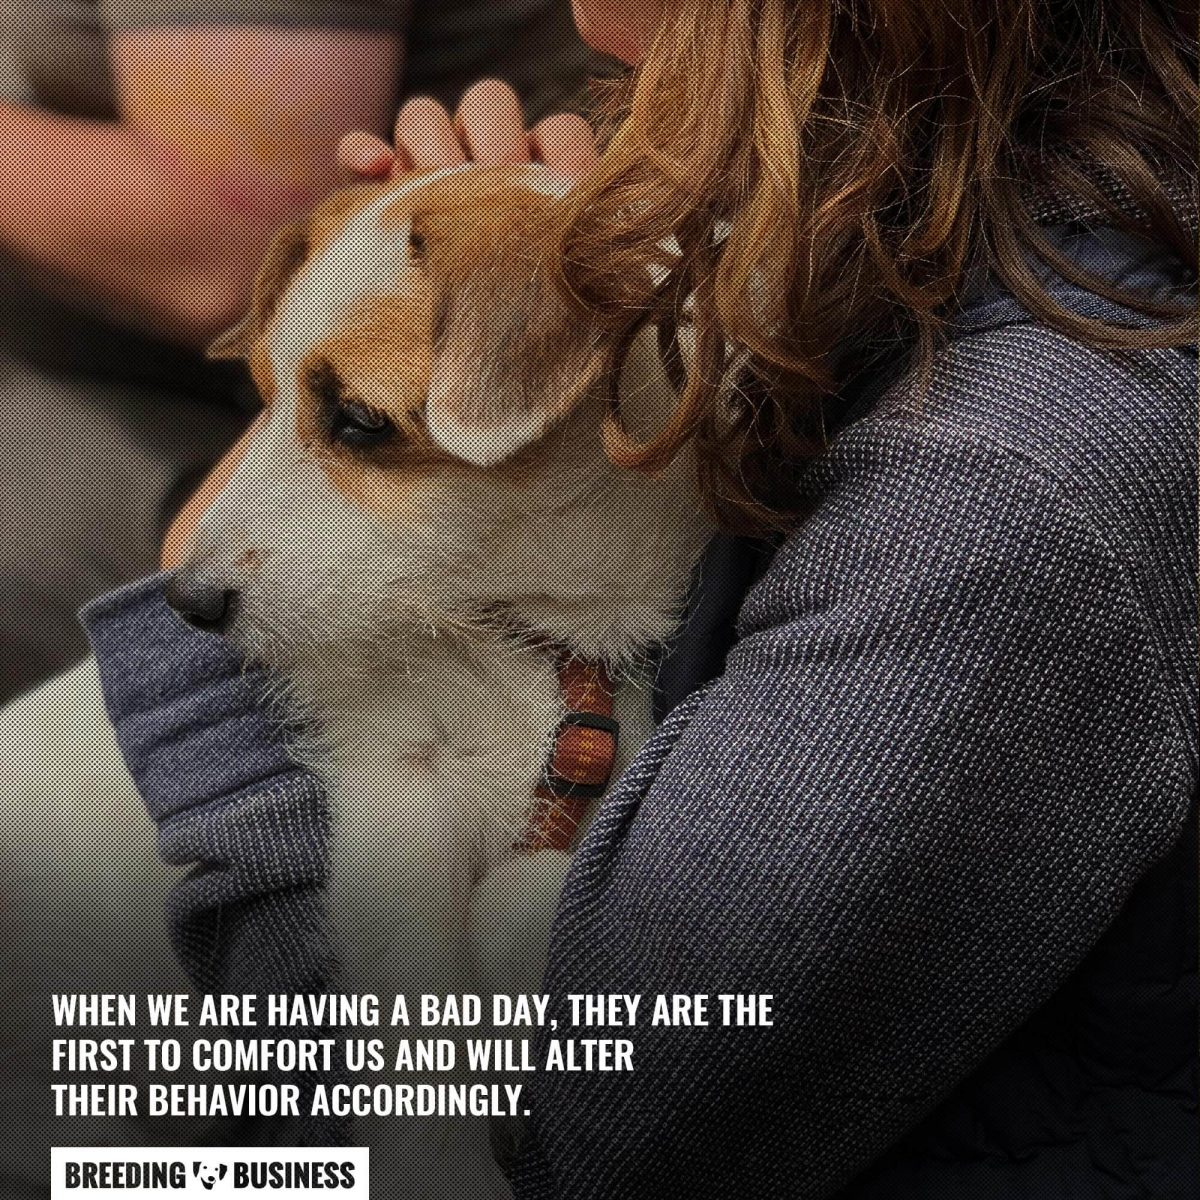 dogs have empathy for us